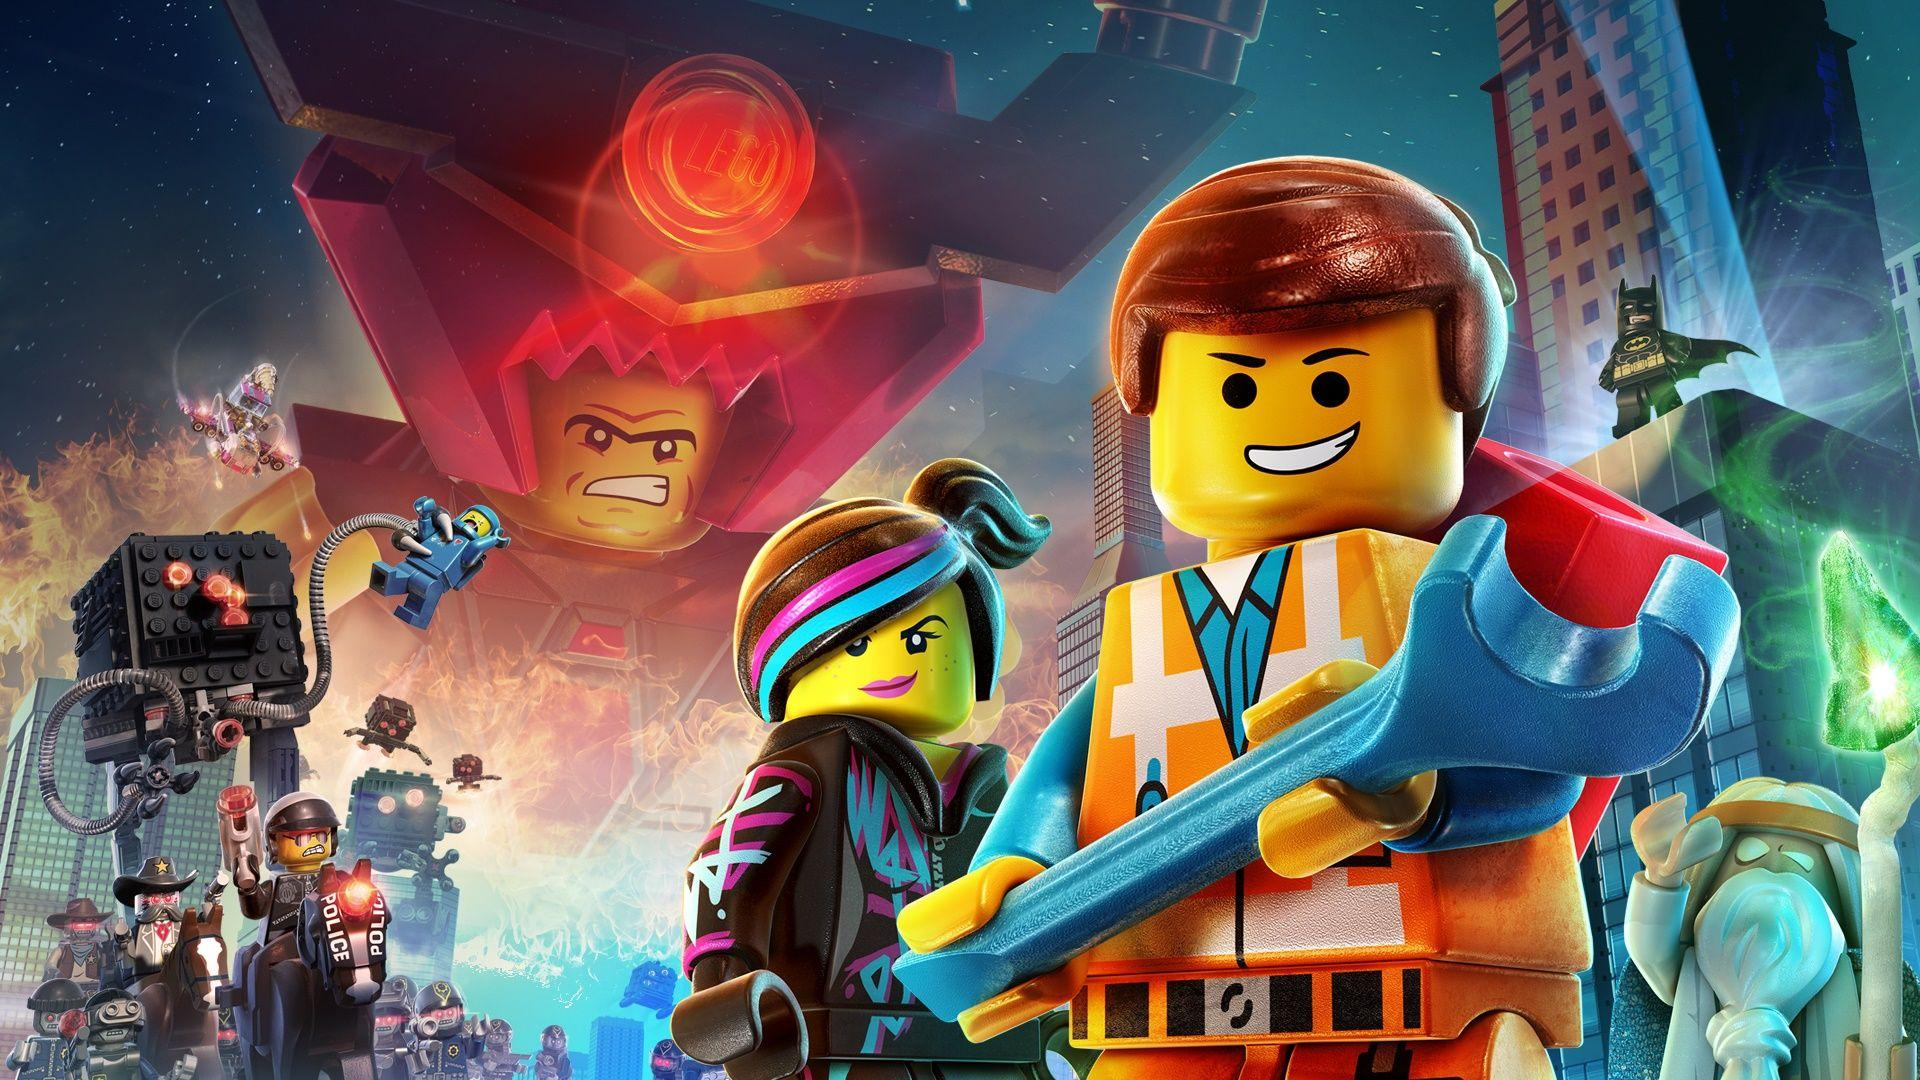 The Lego Movie Wallpapers Wallpaper Cave